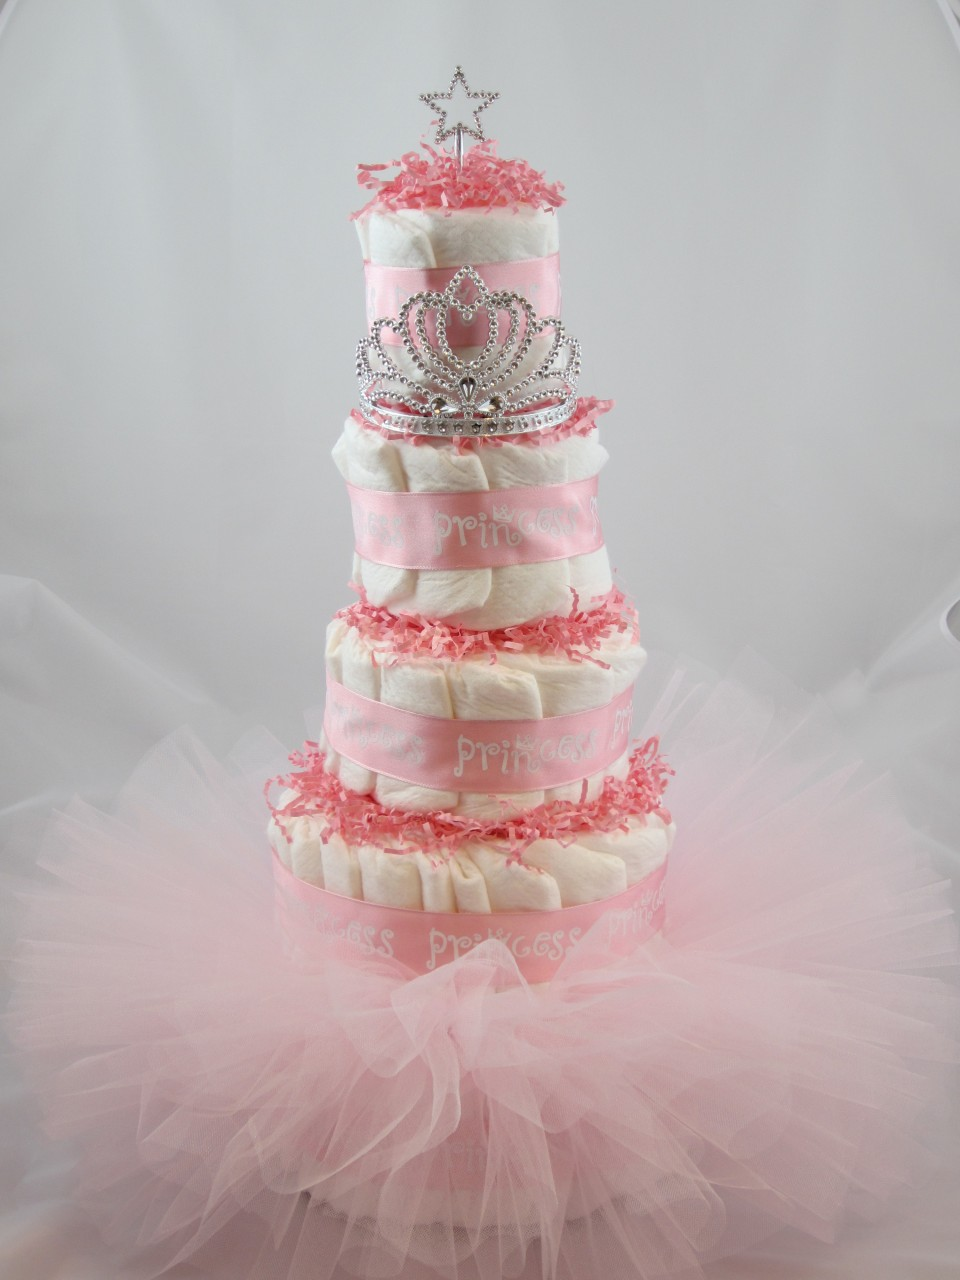 Dare to dream diaper cakes for Baby shower diaper decoration